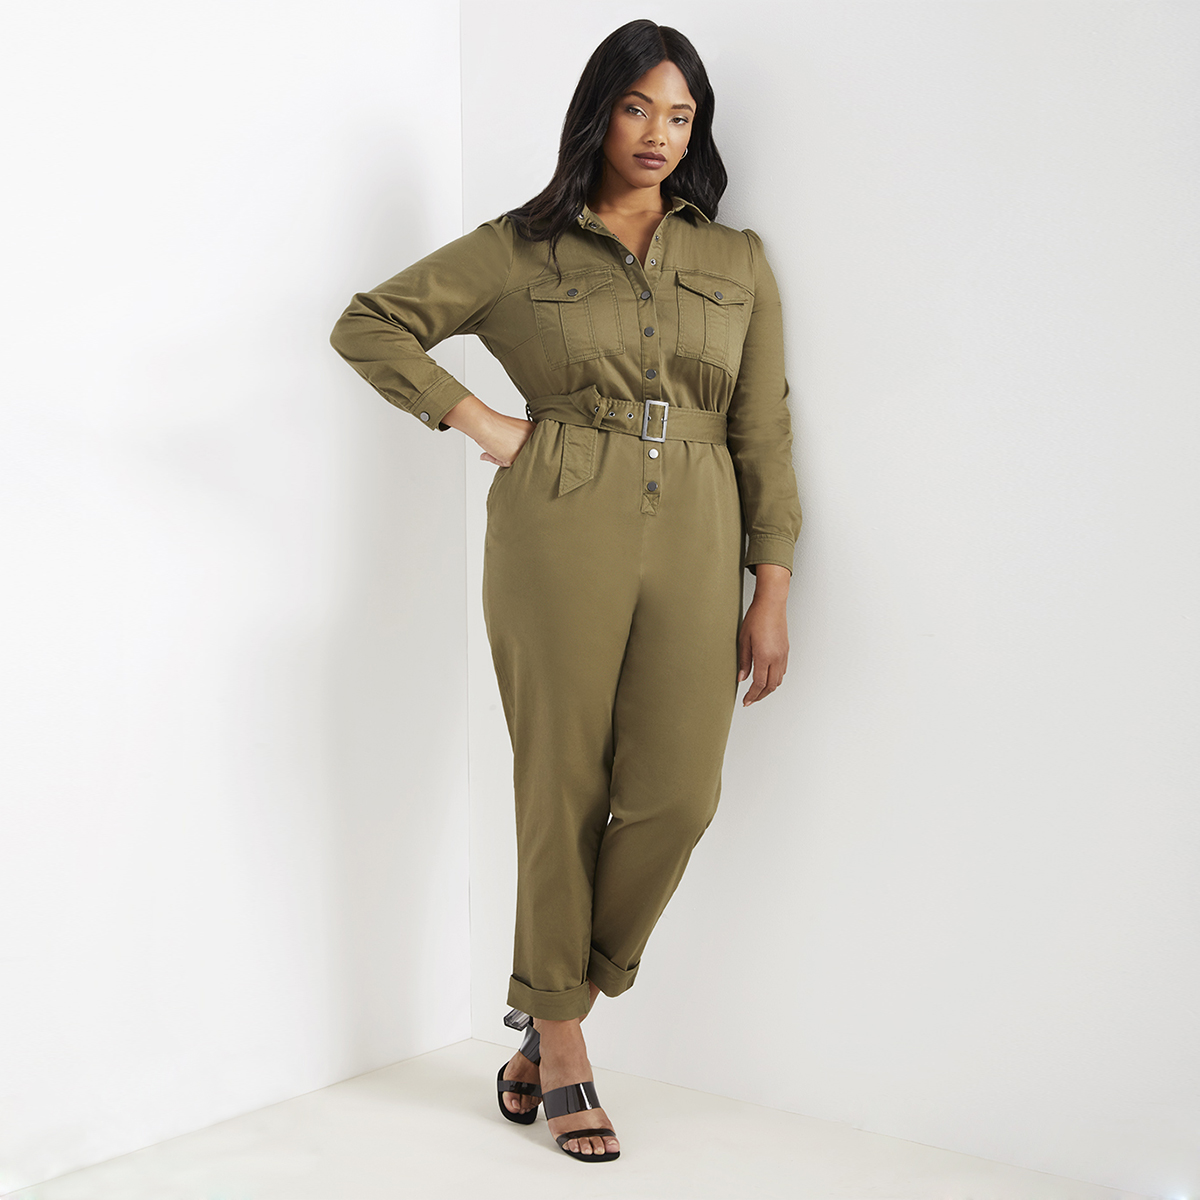 Plus Size Casual Button Detail Shirt Jumpsuit Women 2019 Roll Up Sleeve Tapered Jumpsuits Mid Waist Belted Tooling Jumpsuit